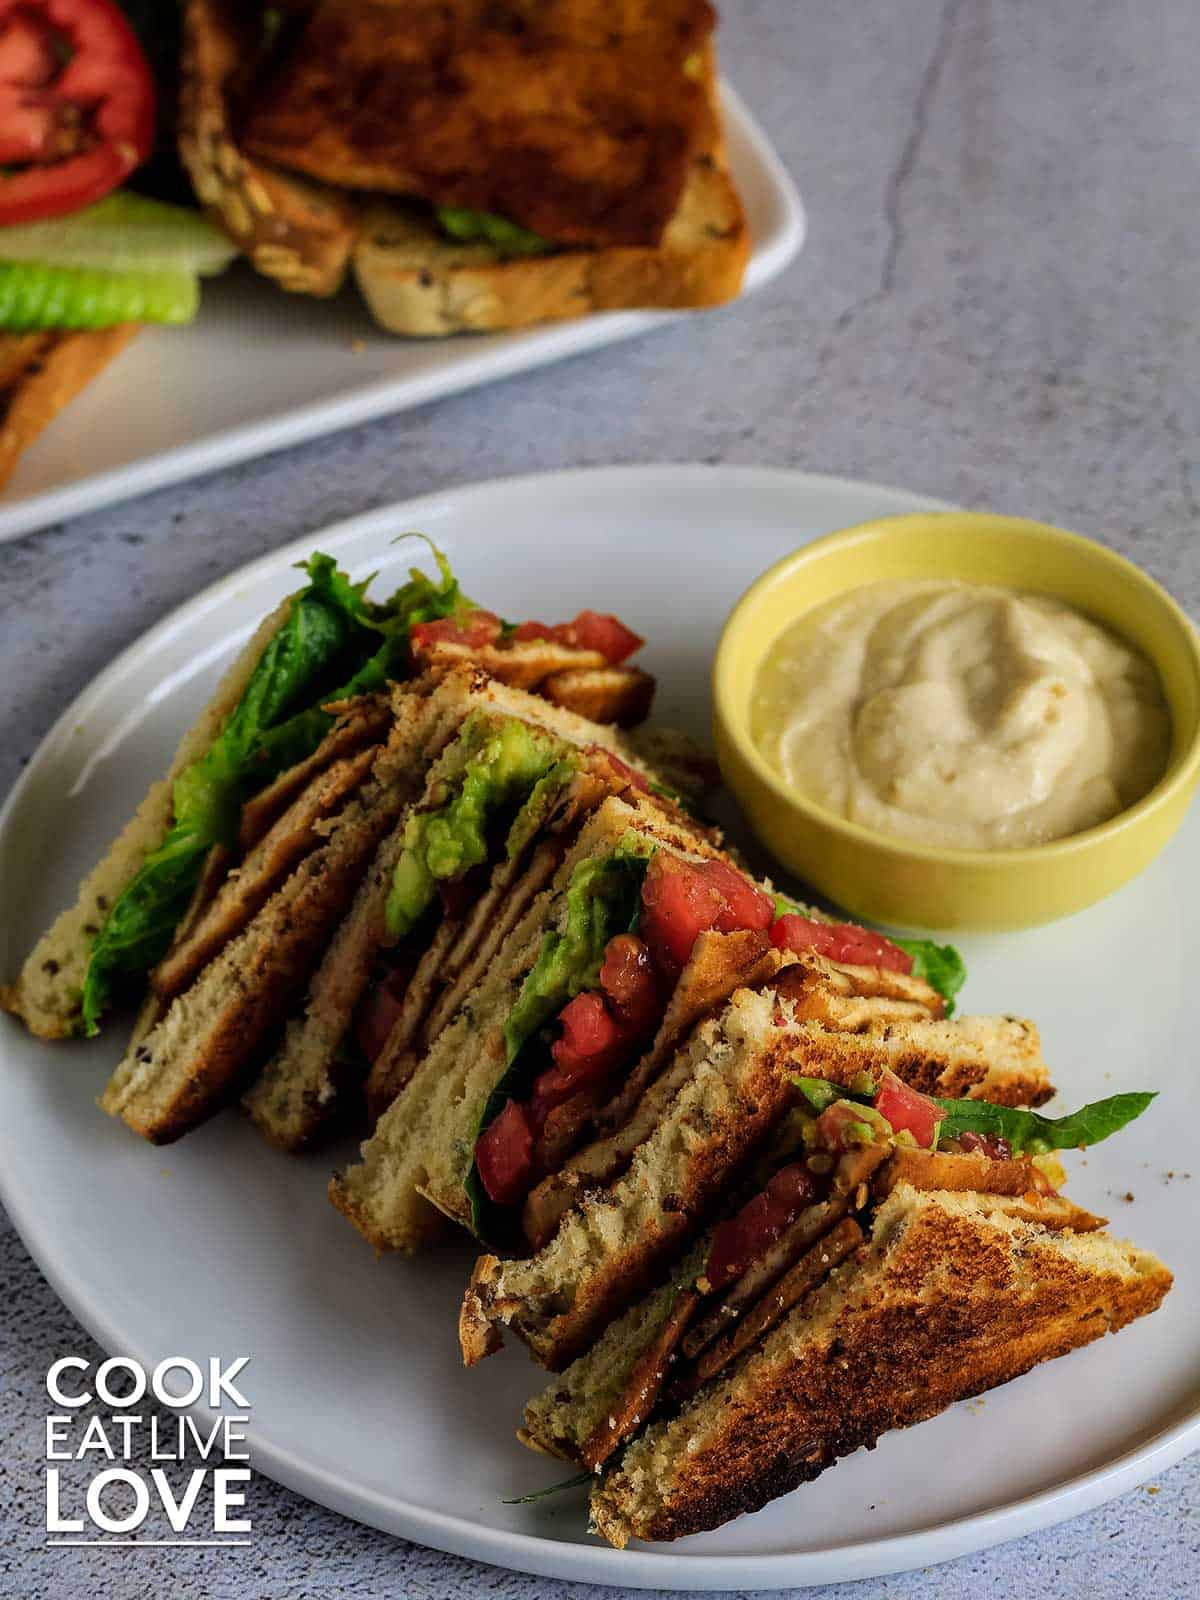 Vegan Blt ready to eat on a plate with creamy mayo sauce.